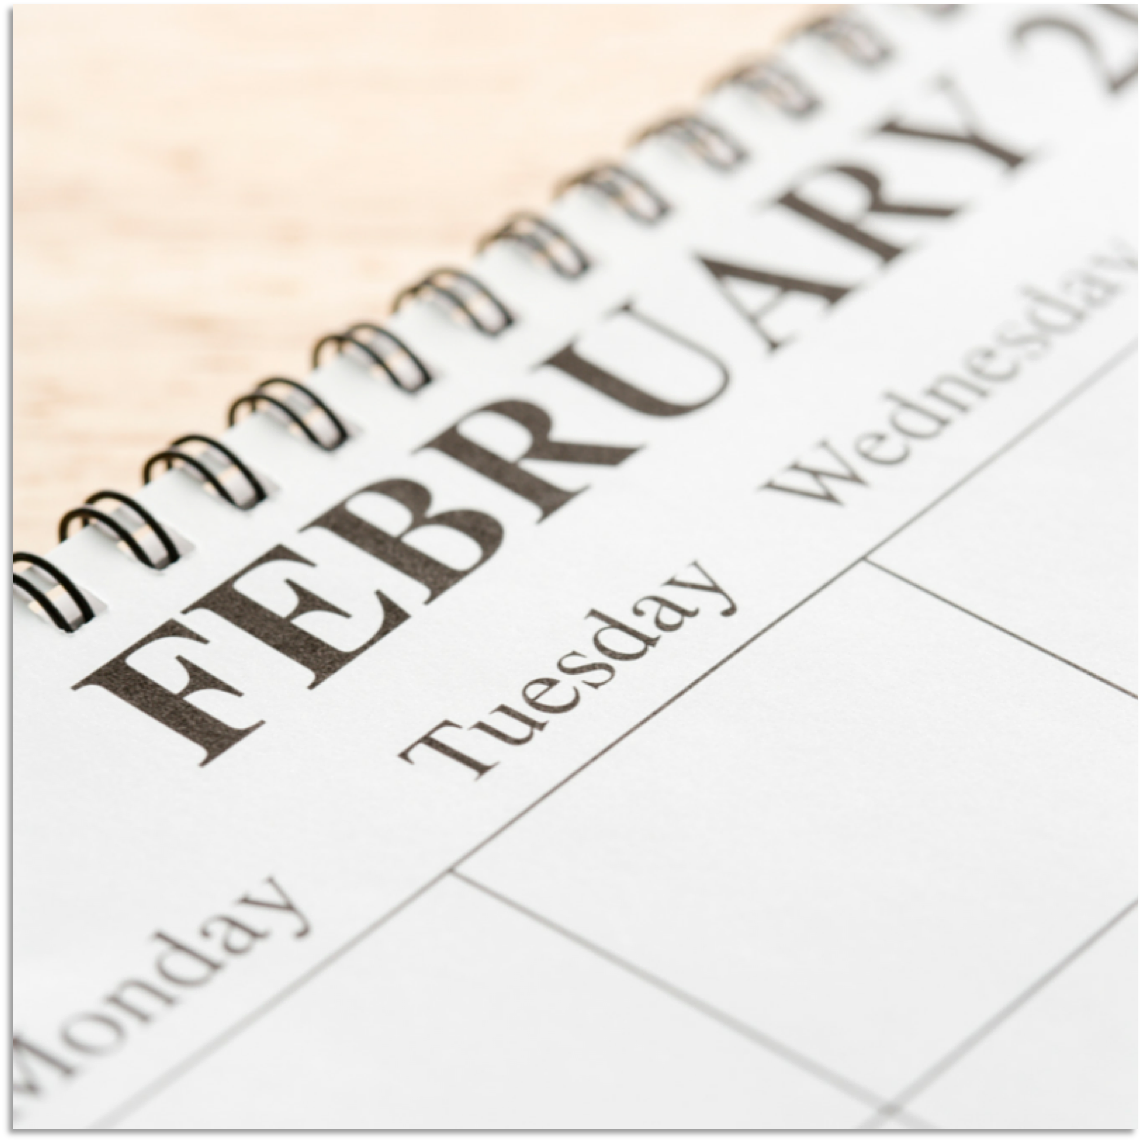 Leap Year 2016: 3 Steps to Avoiding Health IT Problems